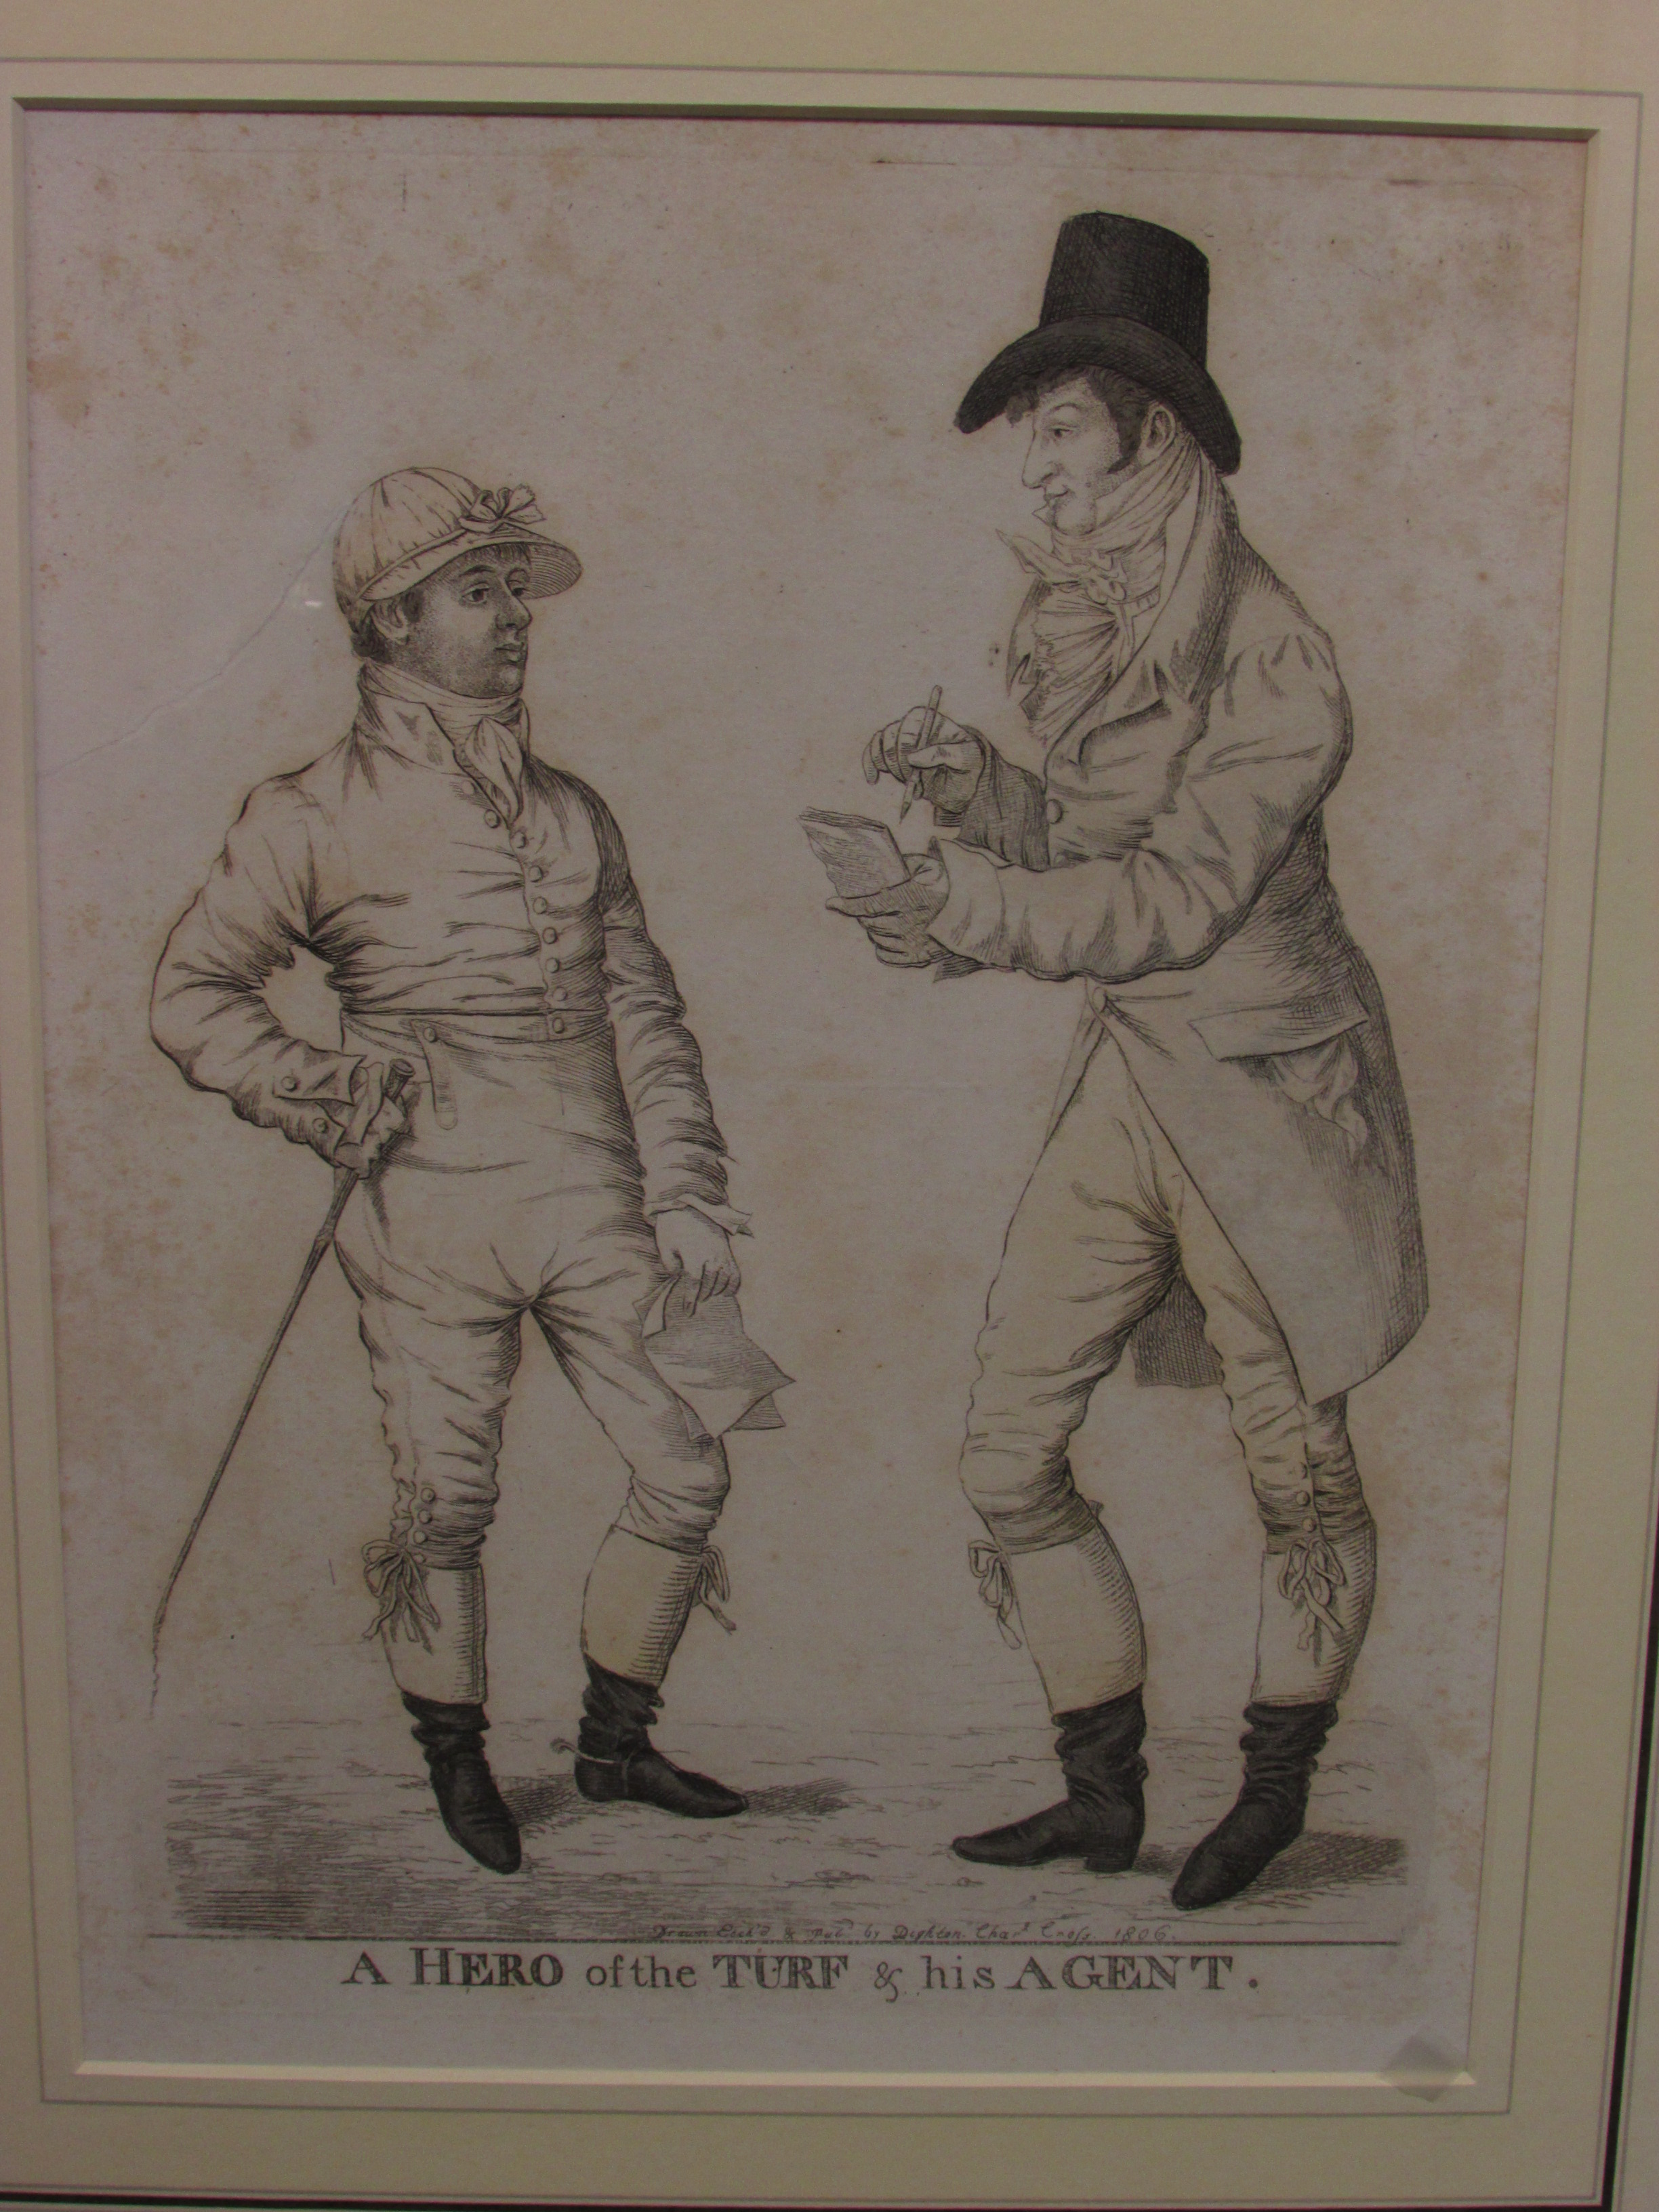 Lot 220 - After Dighton, 'A Hero of the Turf and his agent', etching, 'Drawn Etch'd & Pubd by Dighton Chars